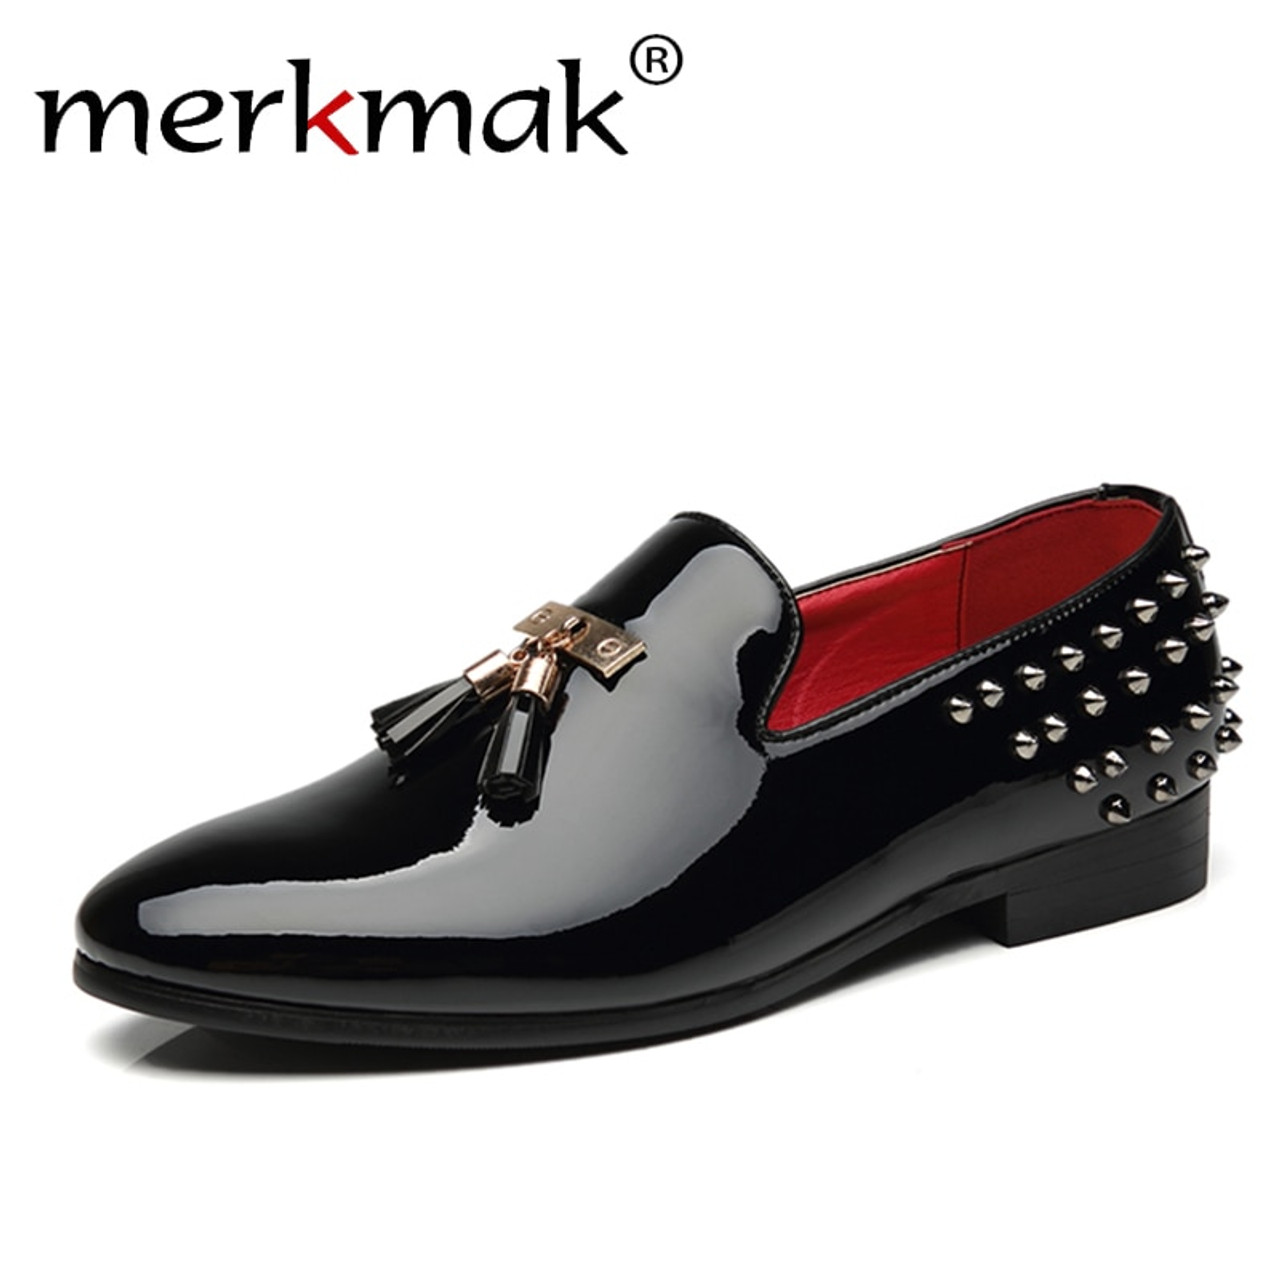 2019 New Men'S PU Leather Casual Shoes